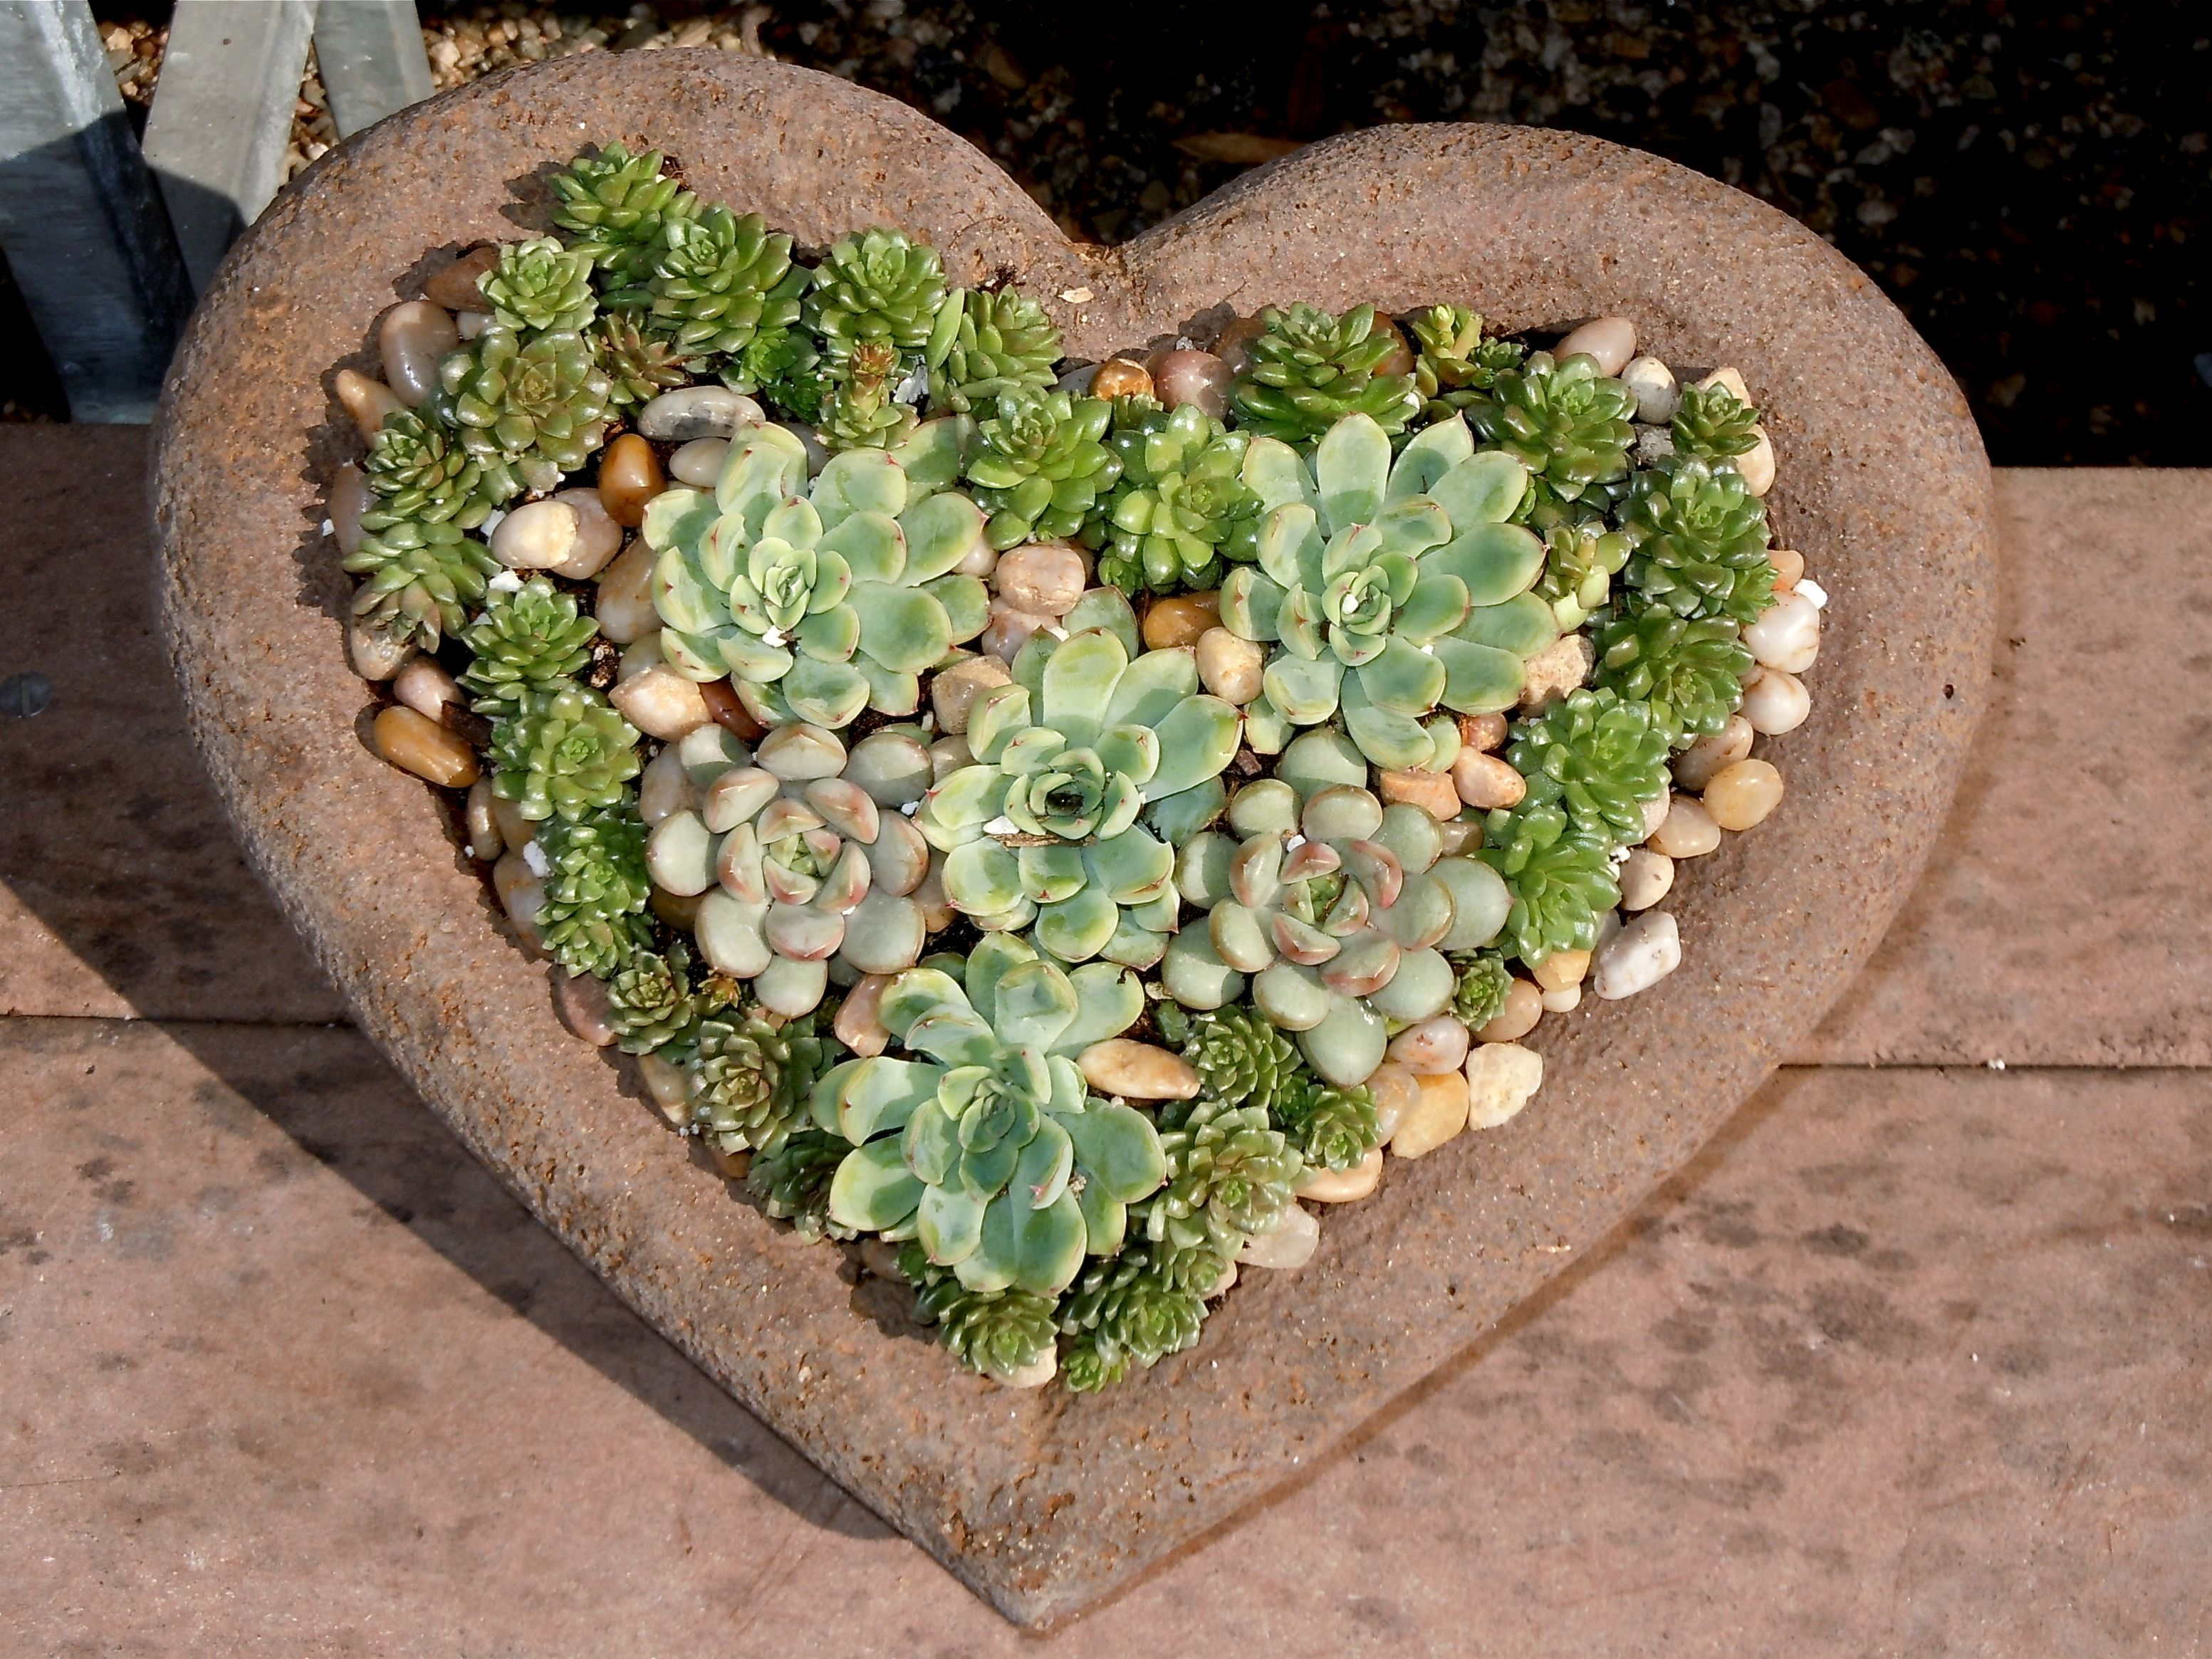 This was spotted at Rodger's Gardens, Corona del Mar, CA.  They wanted nearly one hundred dollars for it and it is only about 18 inches across.  Very cute for Valentine's Day!